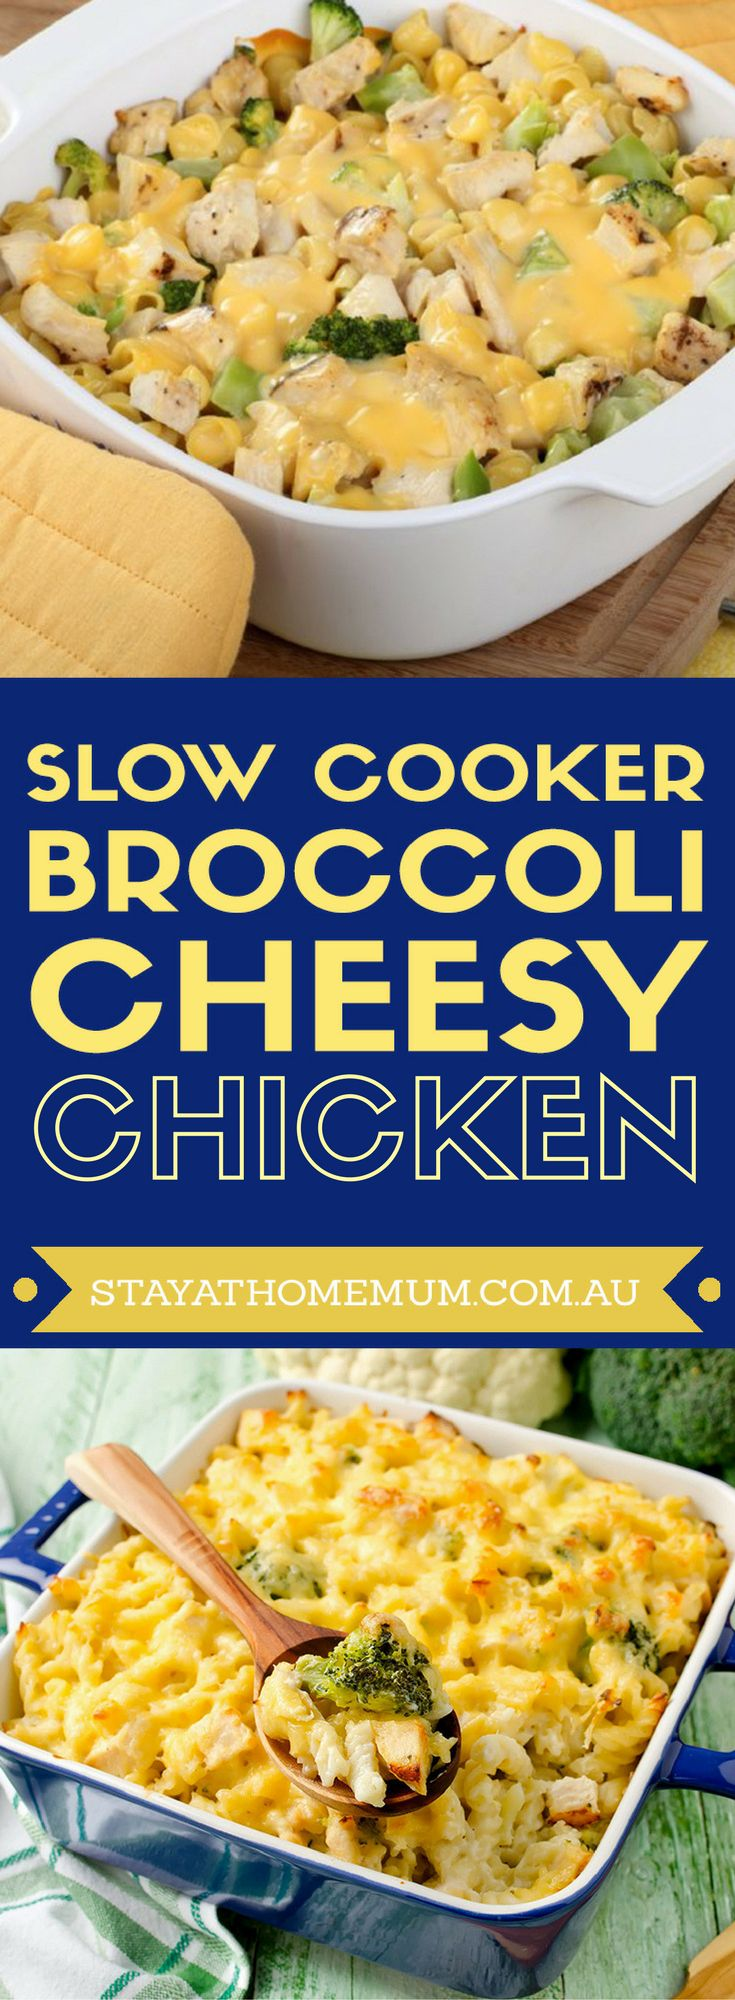 Slowcooker Broccoli Cheesy Chicken is one of my kids favourite meals, and probably the only way I can get them to eat Broccoli!